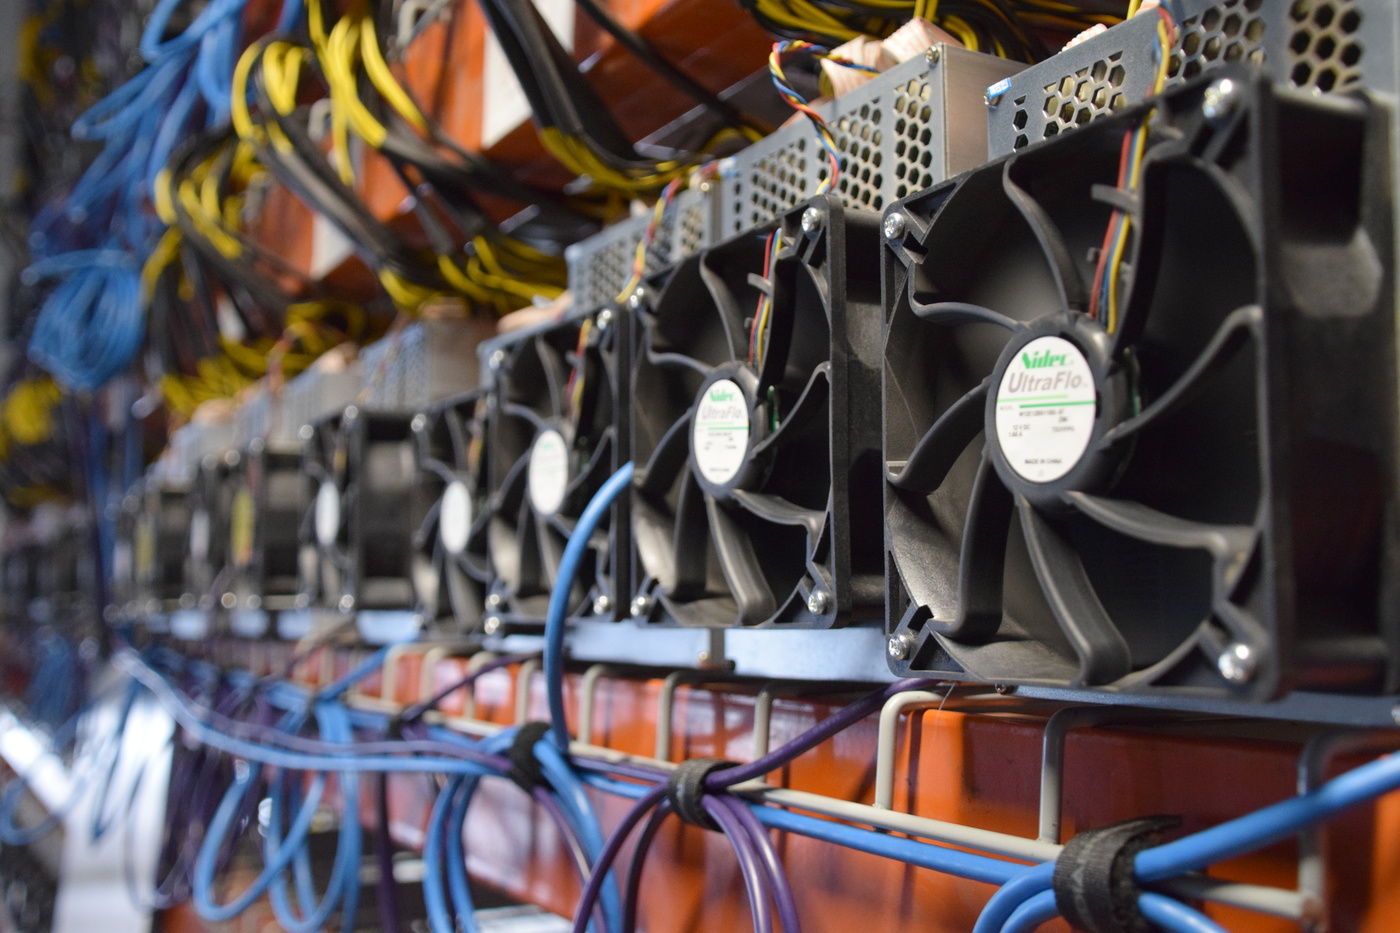 Bitcoin Miners No Longer Turning a Profit Creating Cryptocurrency